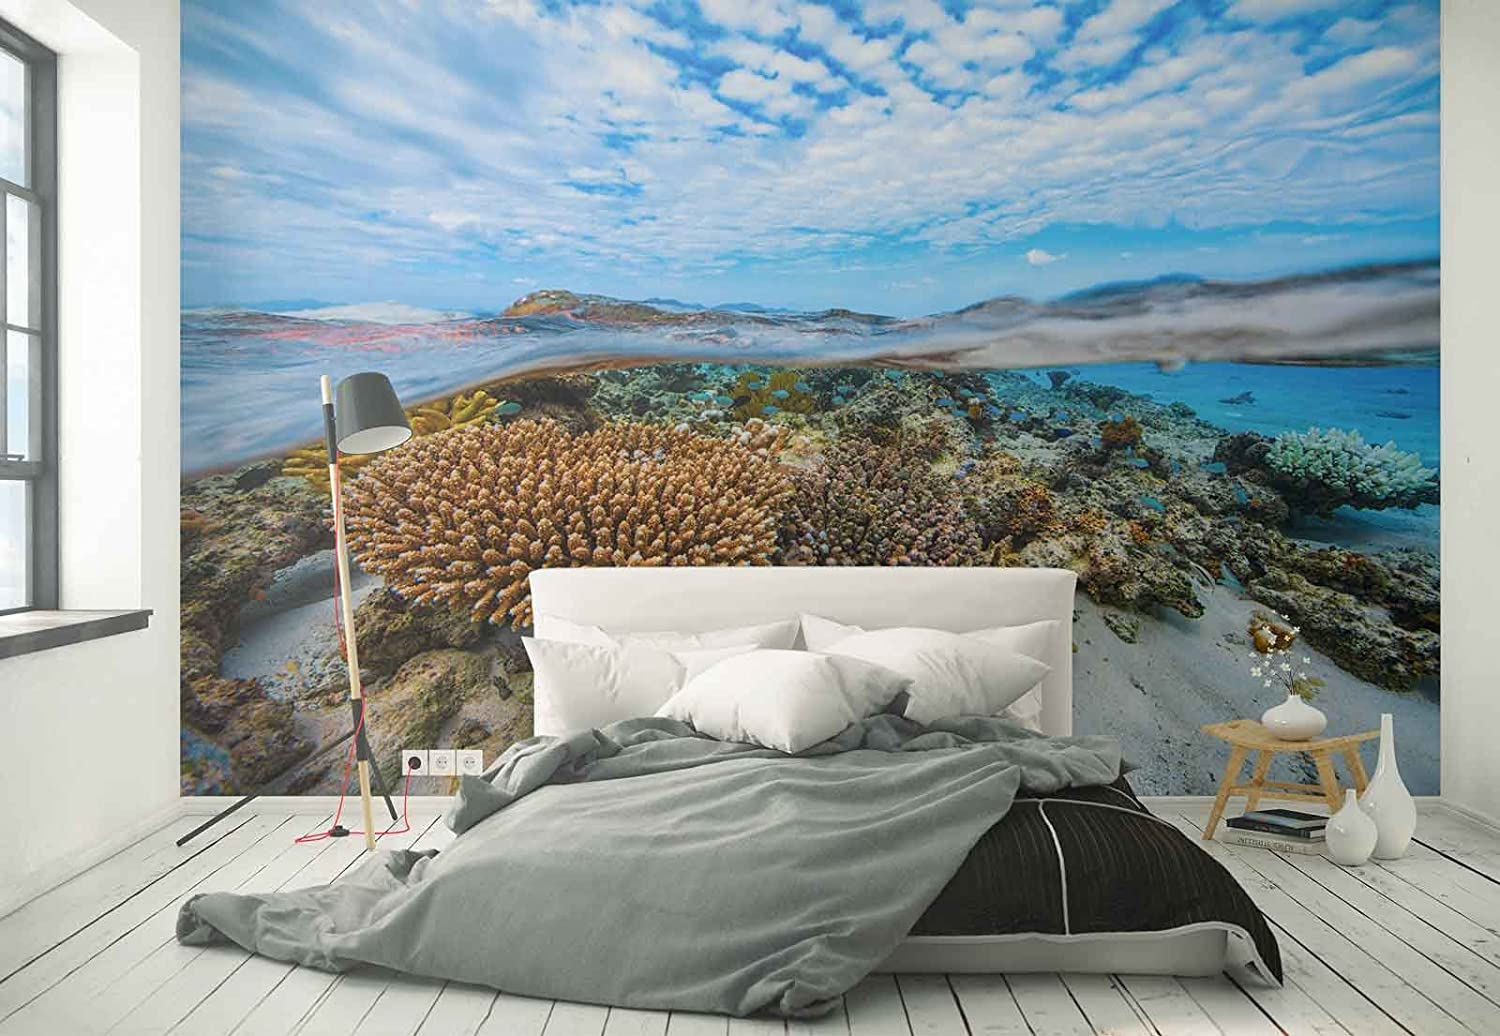 bed in a wall design woodland bedroom decor forest themed.htm photo wallpaper wall mural crystal sea water bottom corals reefs  photo wallpaper wall mural crystal